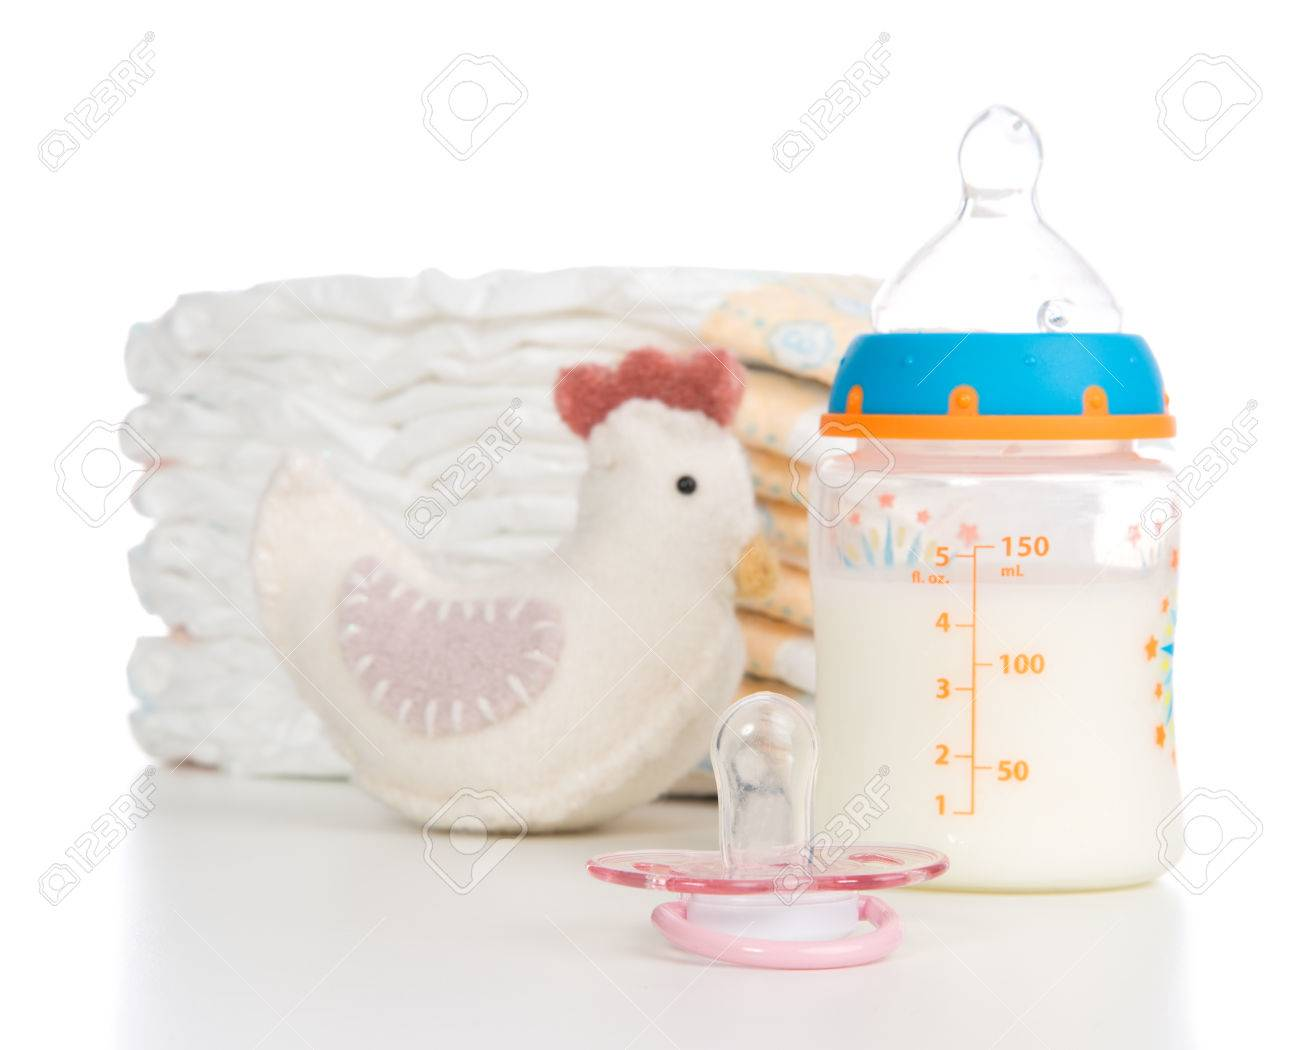 Child stack of diapers, nipple soother, toy and baby feeding bottle with milk on a white background Stock Photo - 25370651